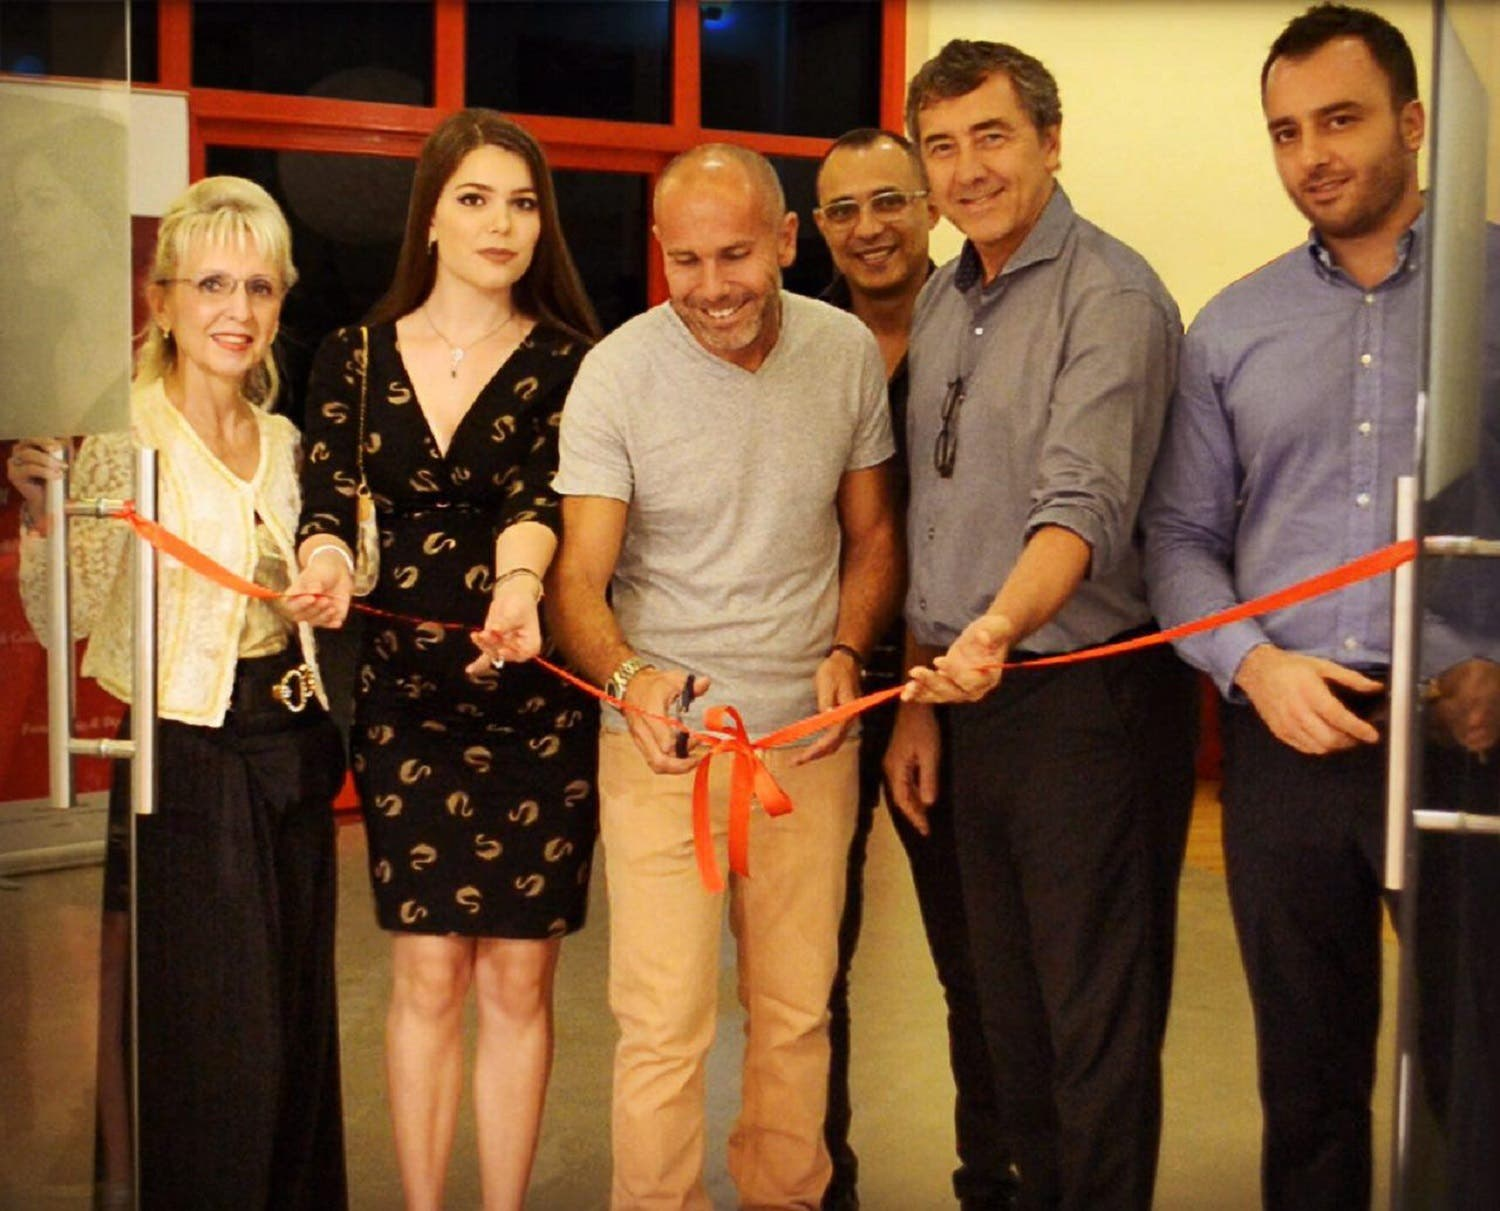 Boris Wilensky (centre) at the opening of his exhibition, along with the organizers at Alliance Francaise, Dubai. (Supplied)